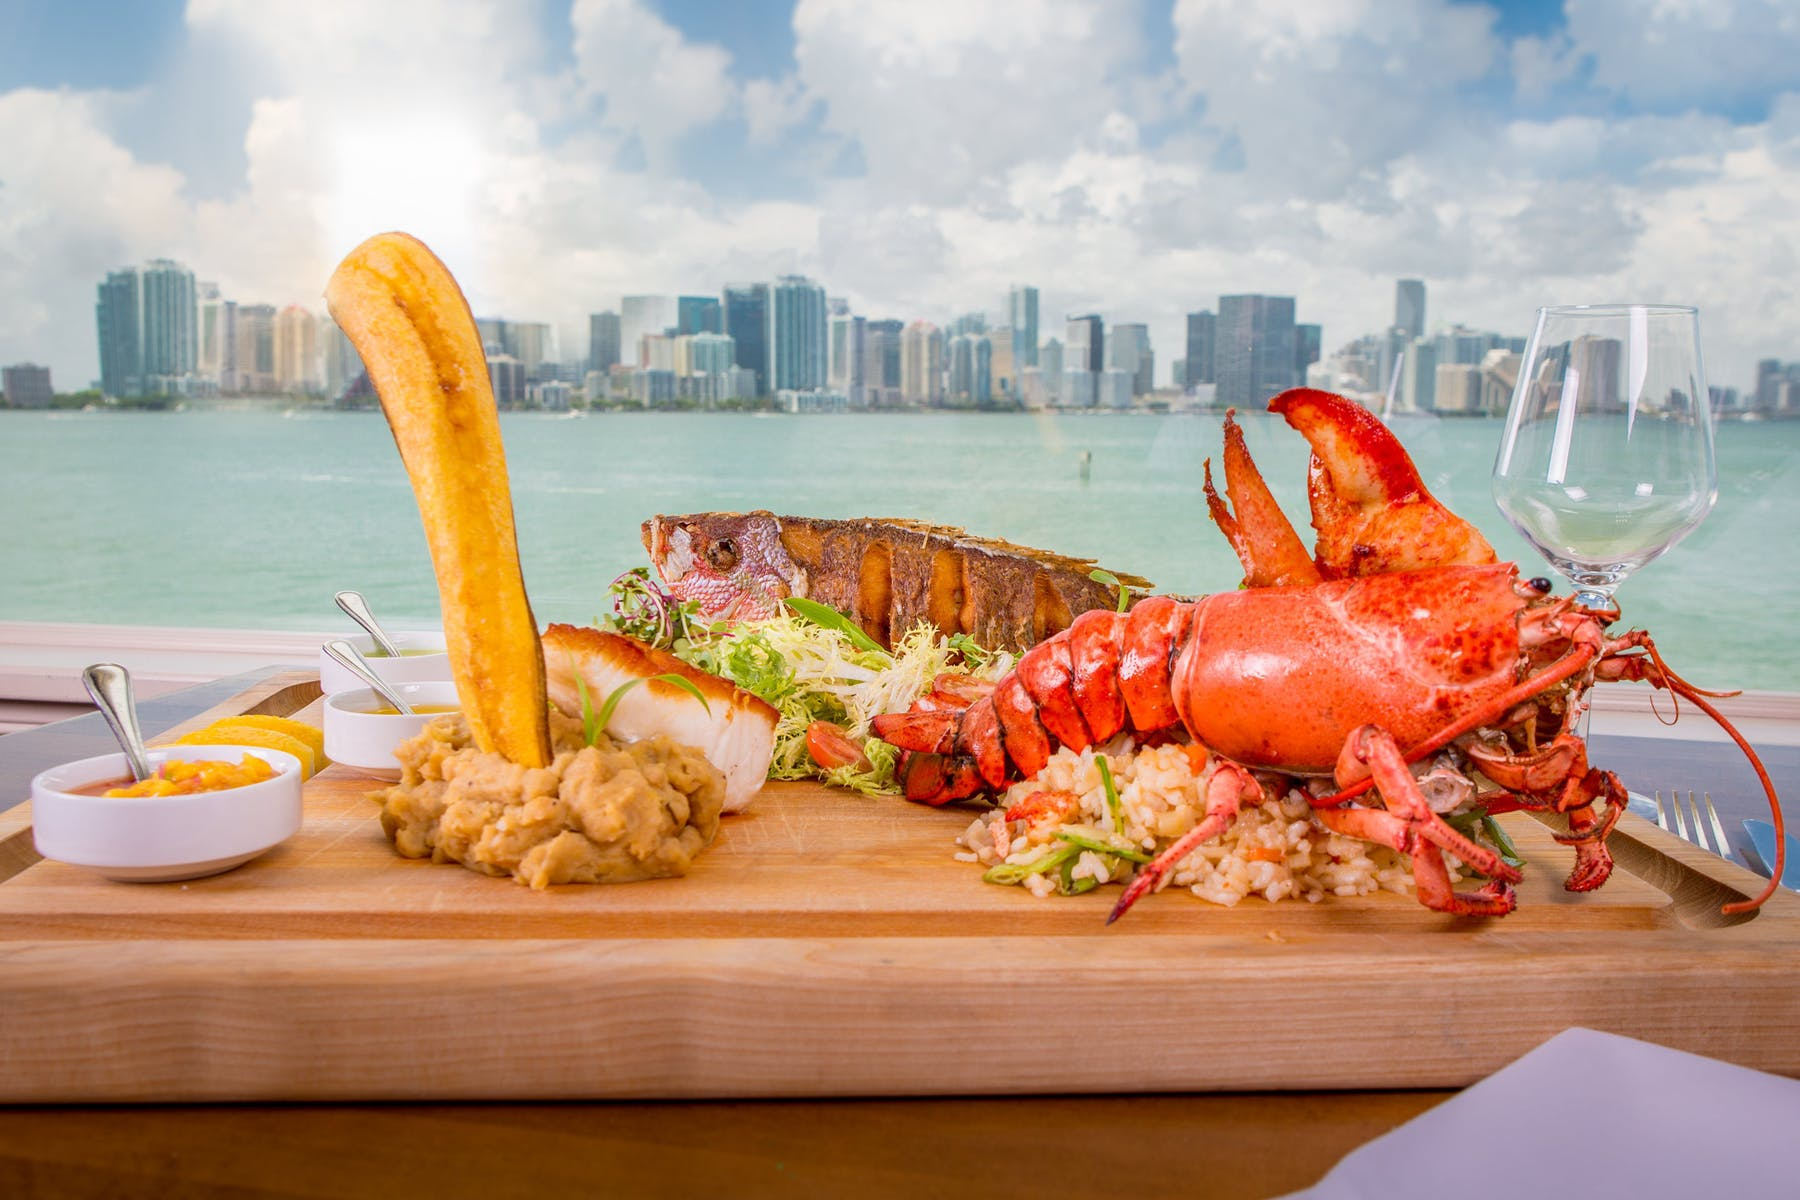 a lobster on a wooden table